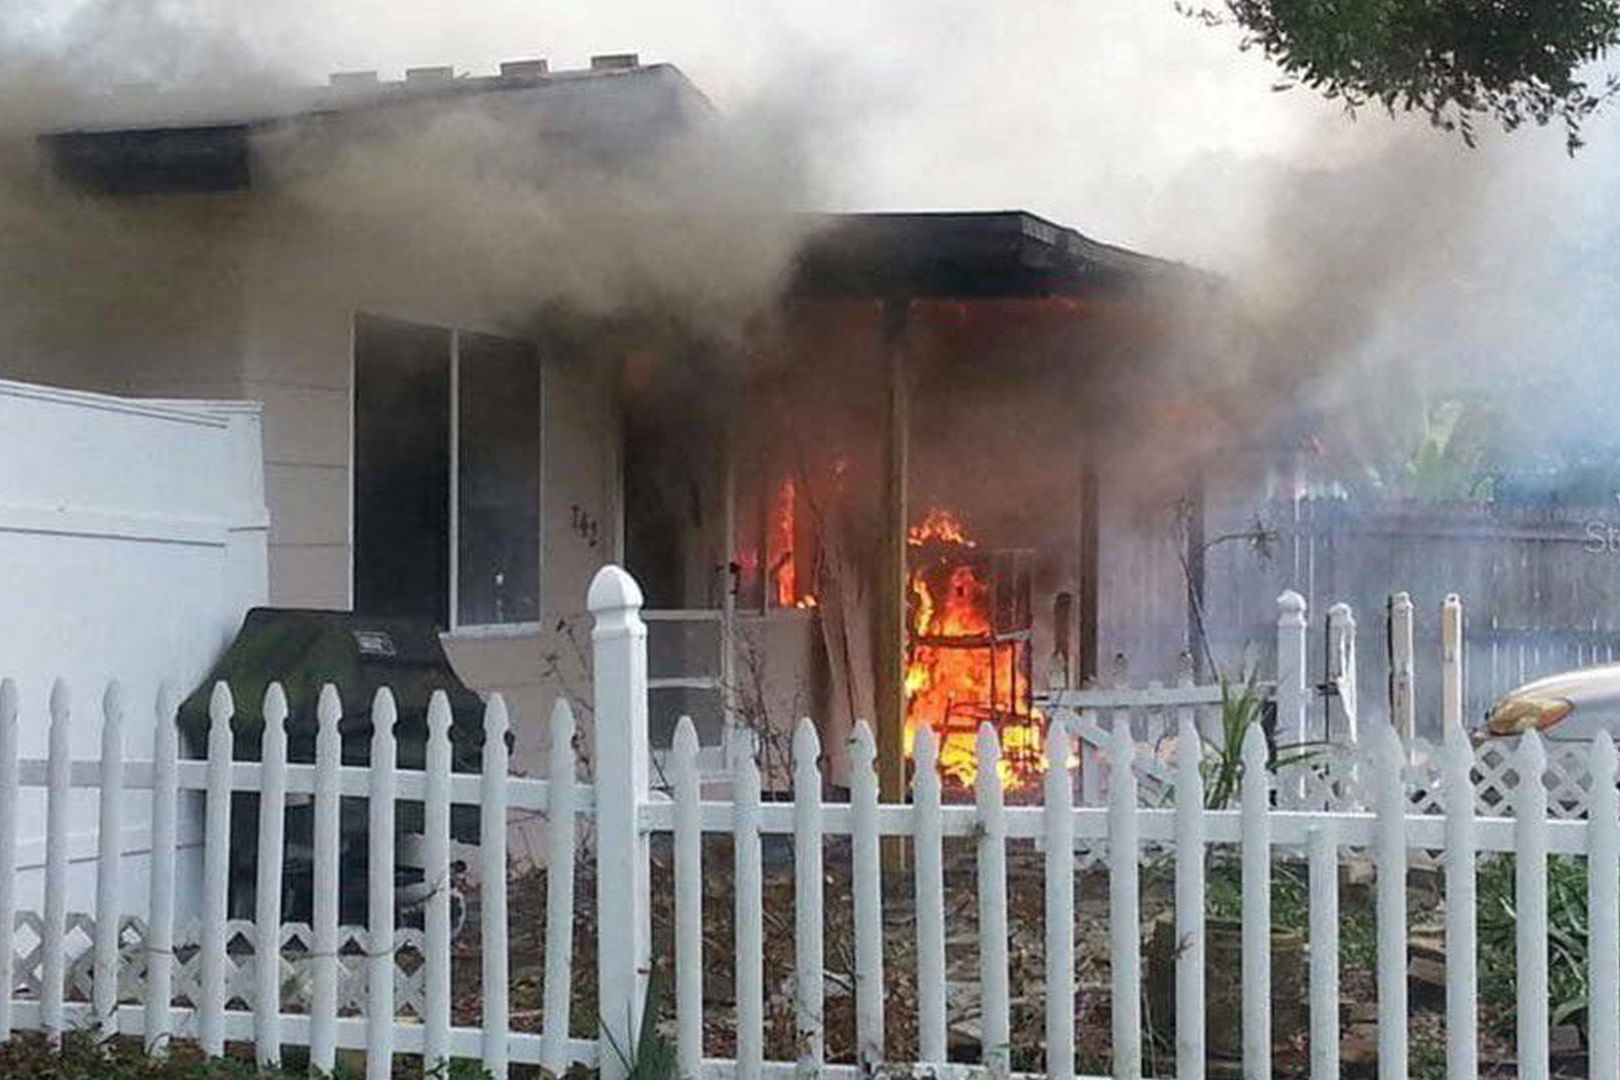 Florida Realtor Includes Photo of House on Fire in Listing, Encourages Buyers to Bring S'mores